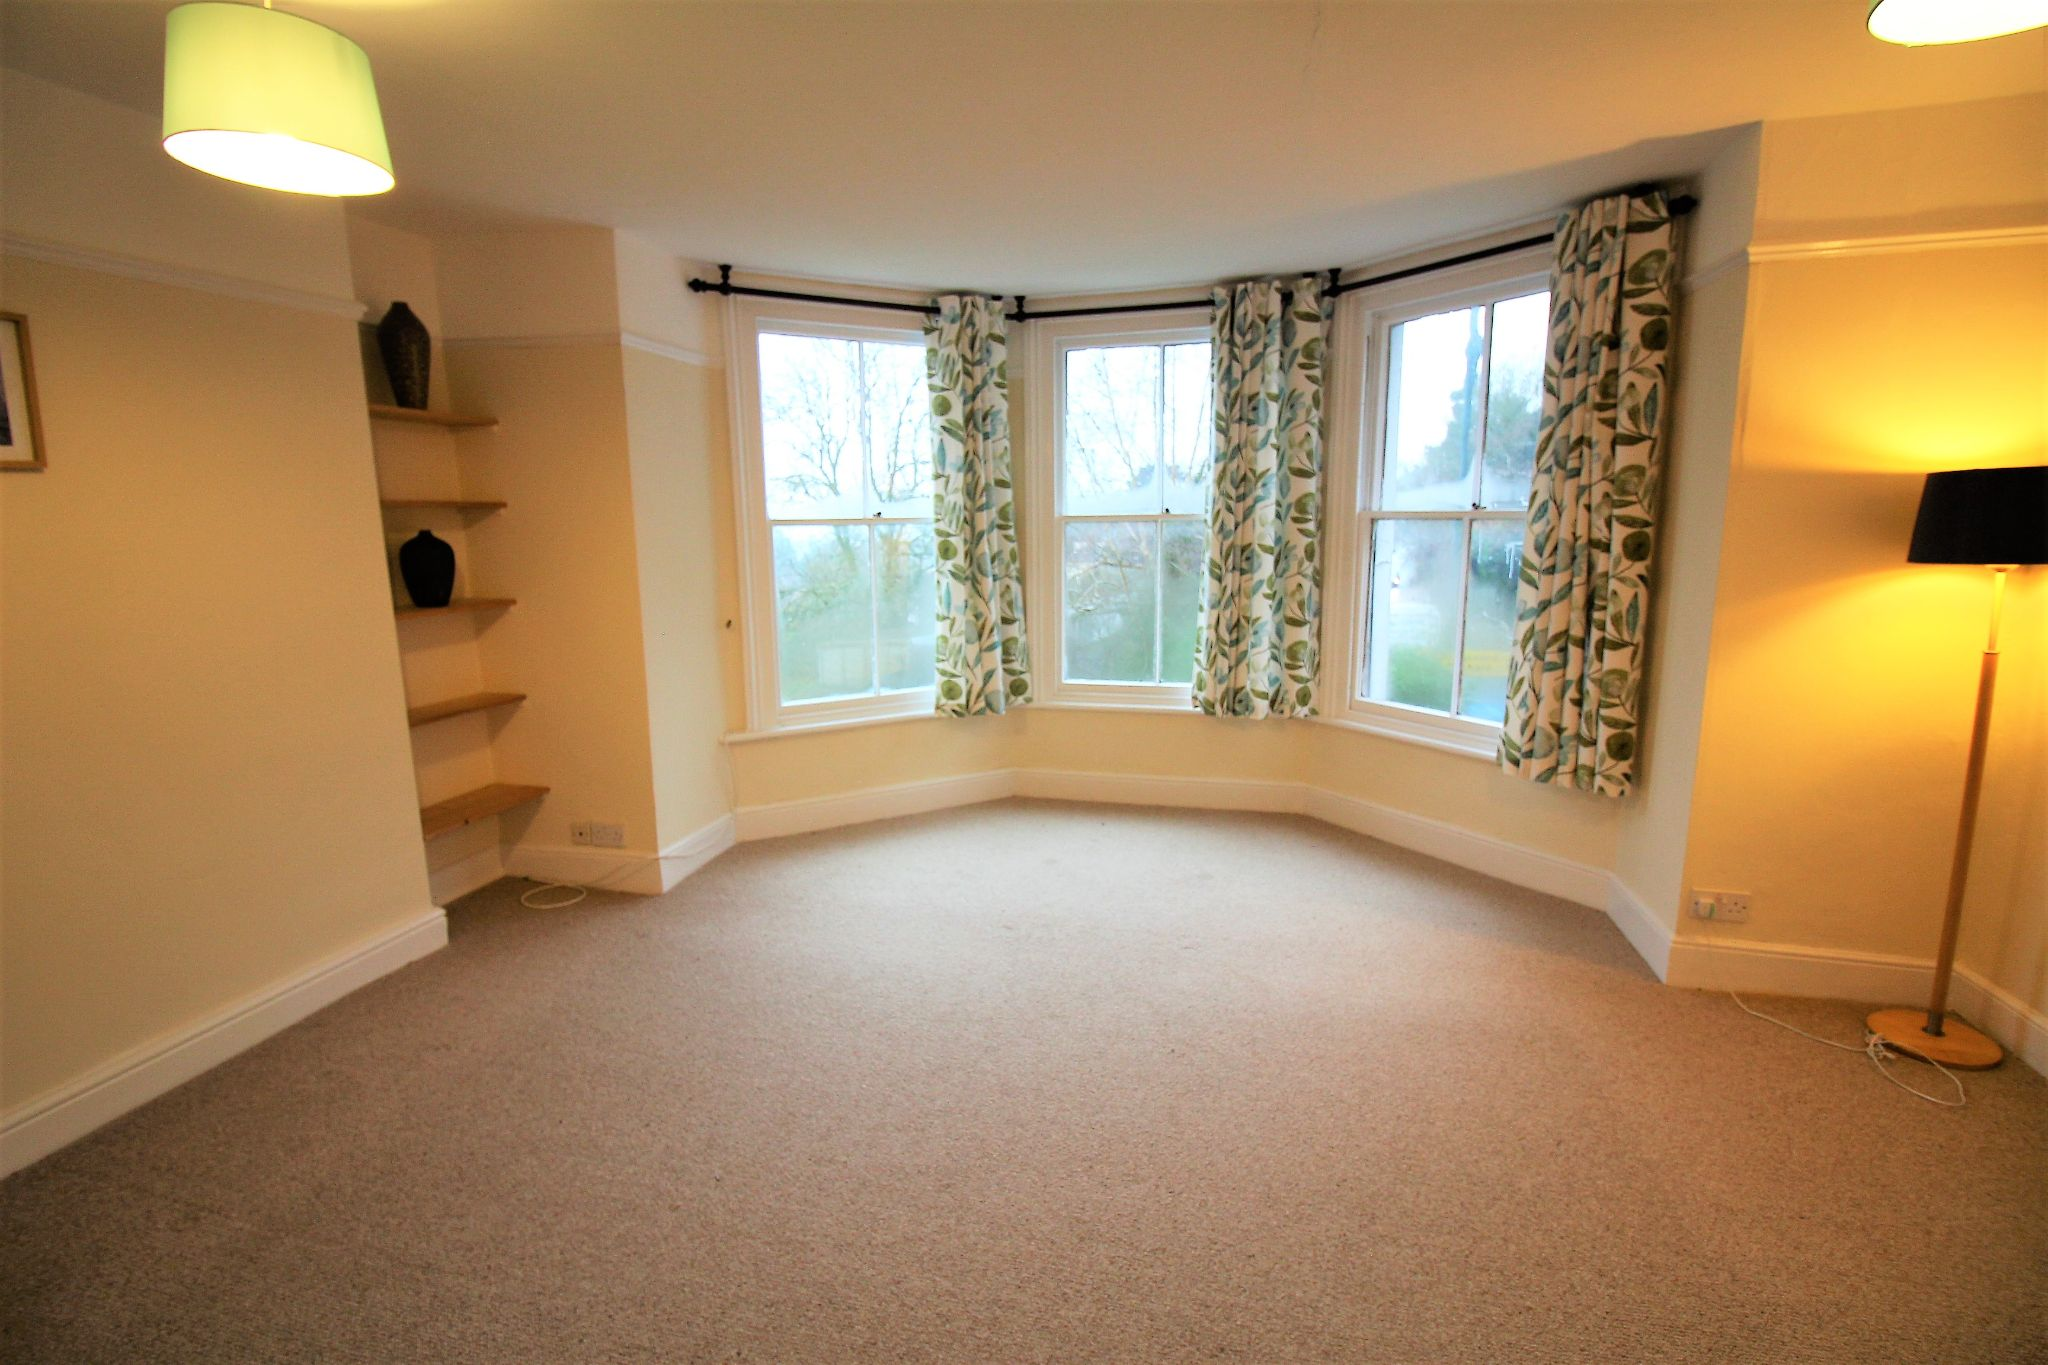 1 bedroom apartment flat/apartment For Sale in Malvern Hills - Photograph 4.